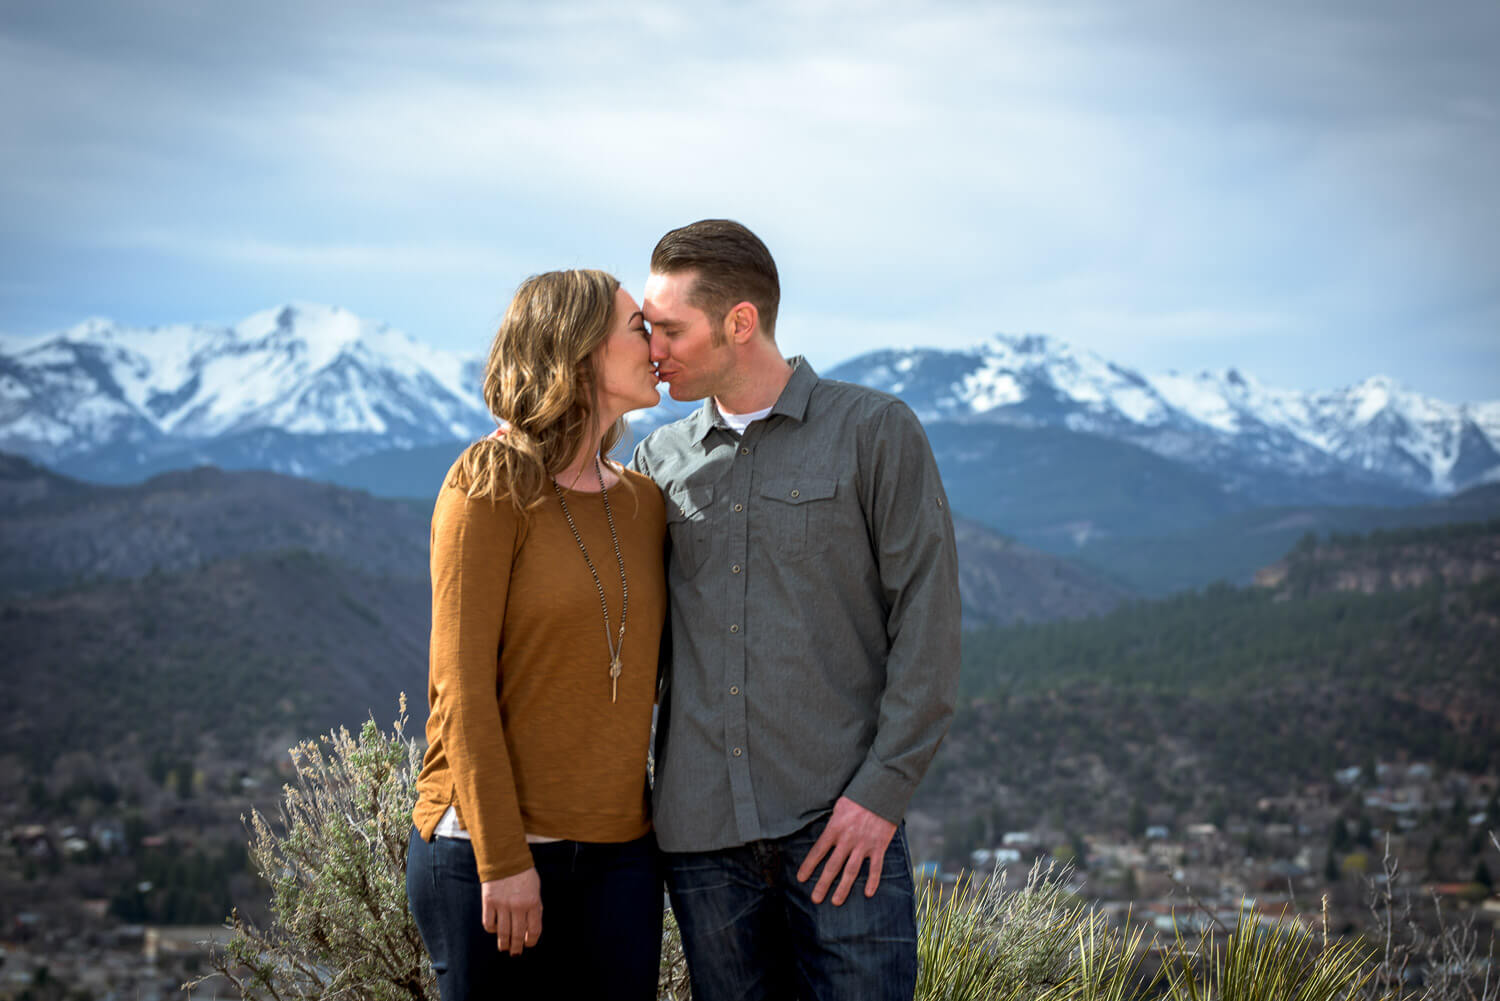 Engagement Photos in the Mountain Durango Colorado